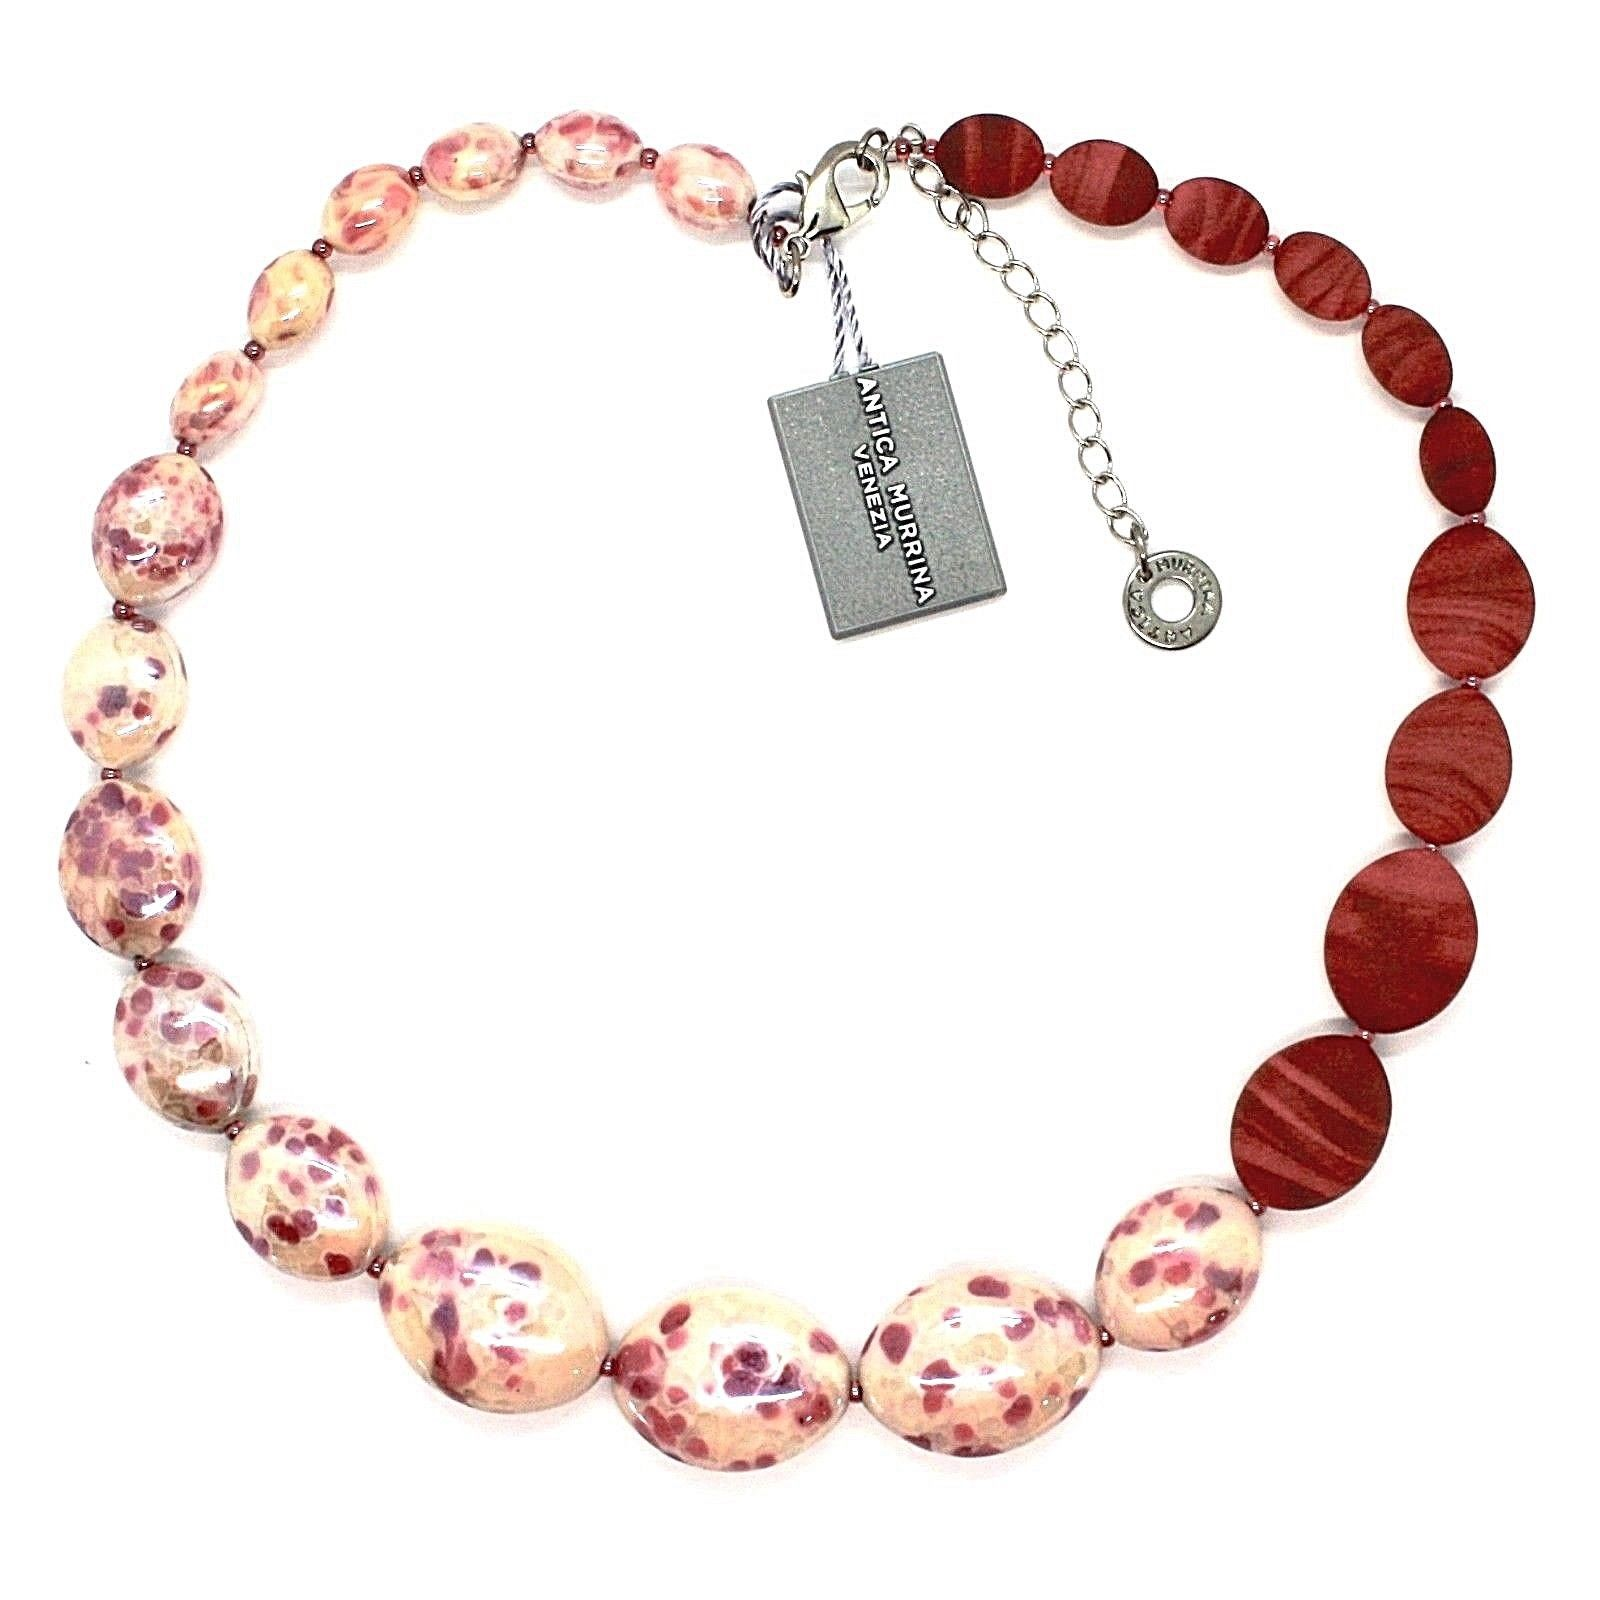 NECKLACE ANTICA MURRINA VENEZIA WITH MURANO GLASS RED BEIGE WHITE CO924A11